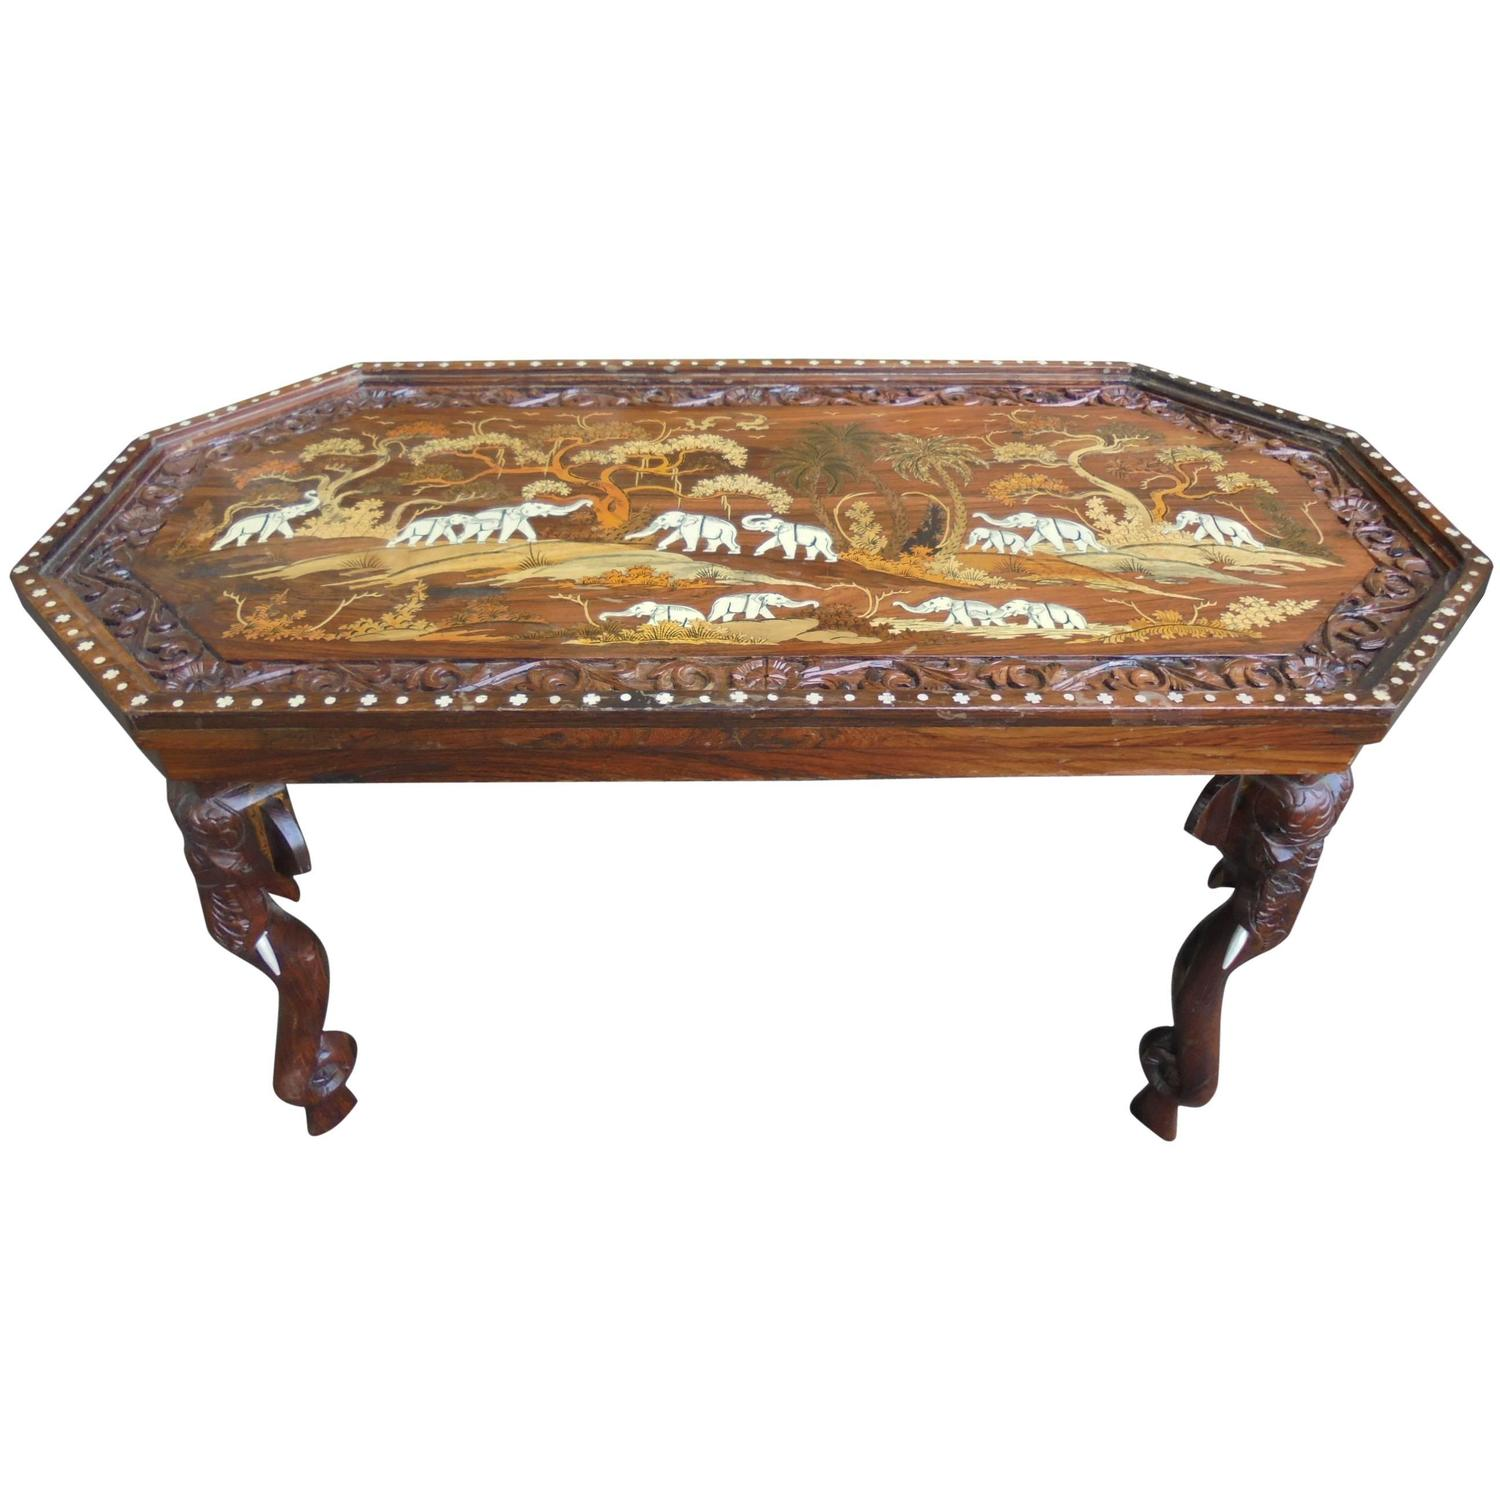 Antique Anglo Indian Inlaid Hardwood Coffee Table